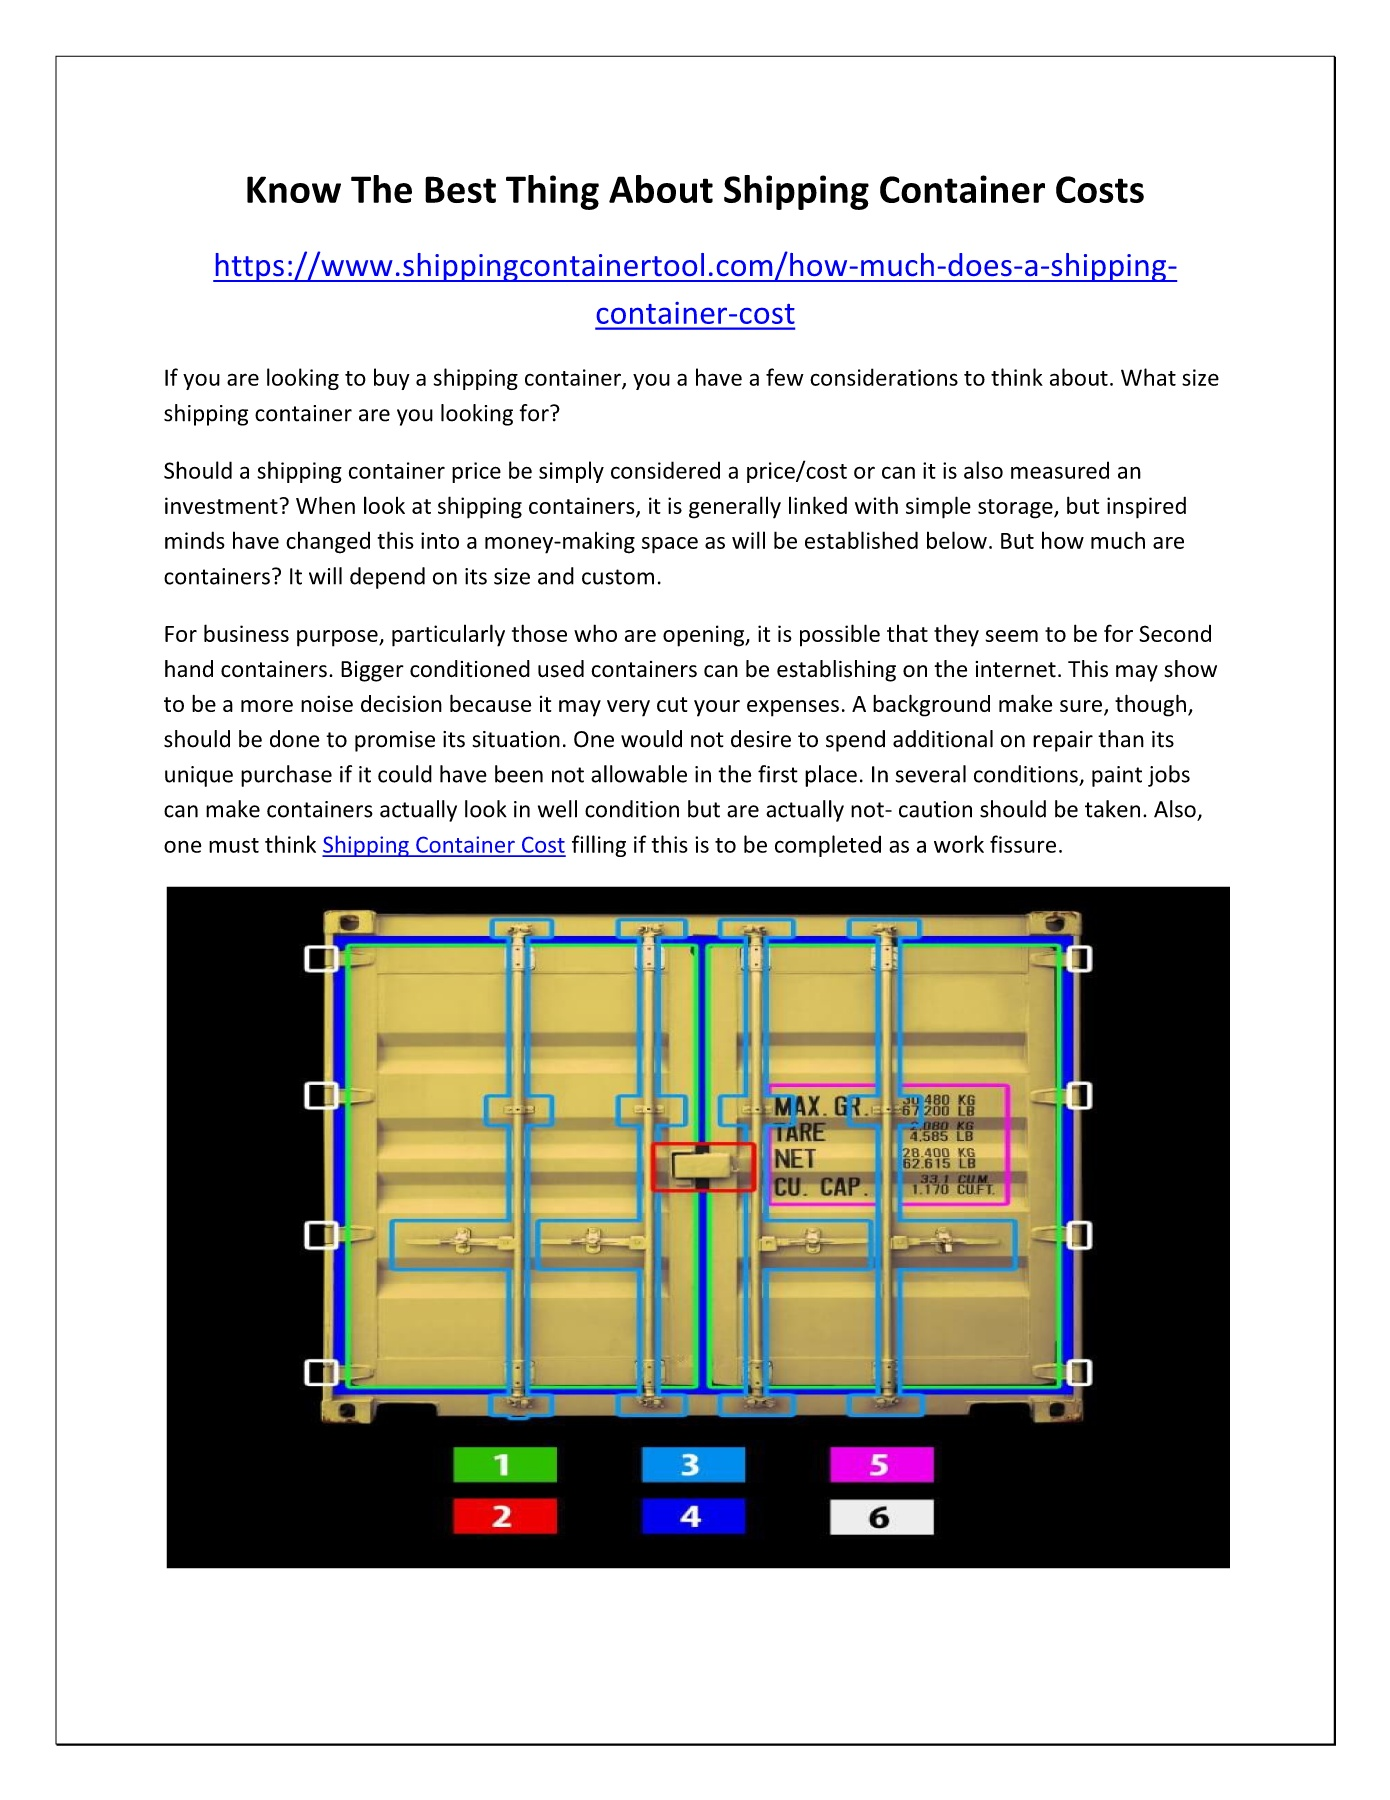 How Much Does a Shipping Container Cost? Pages 1 - 2 - Text